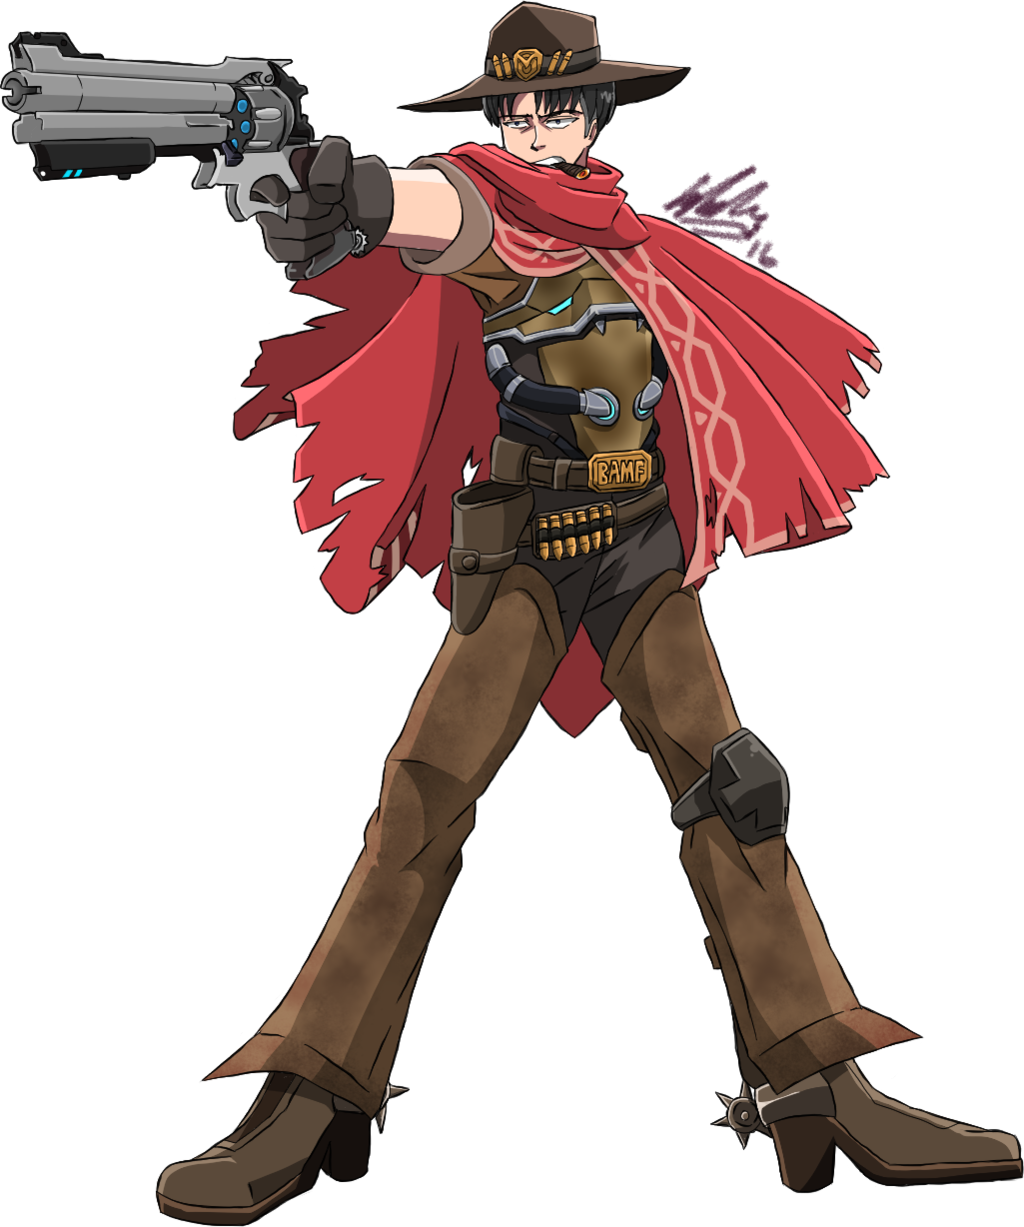 Mccree png ahegao. Overwatchxsnk aot levi as